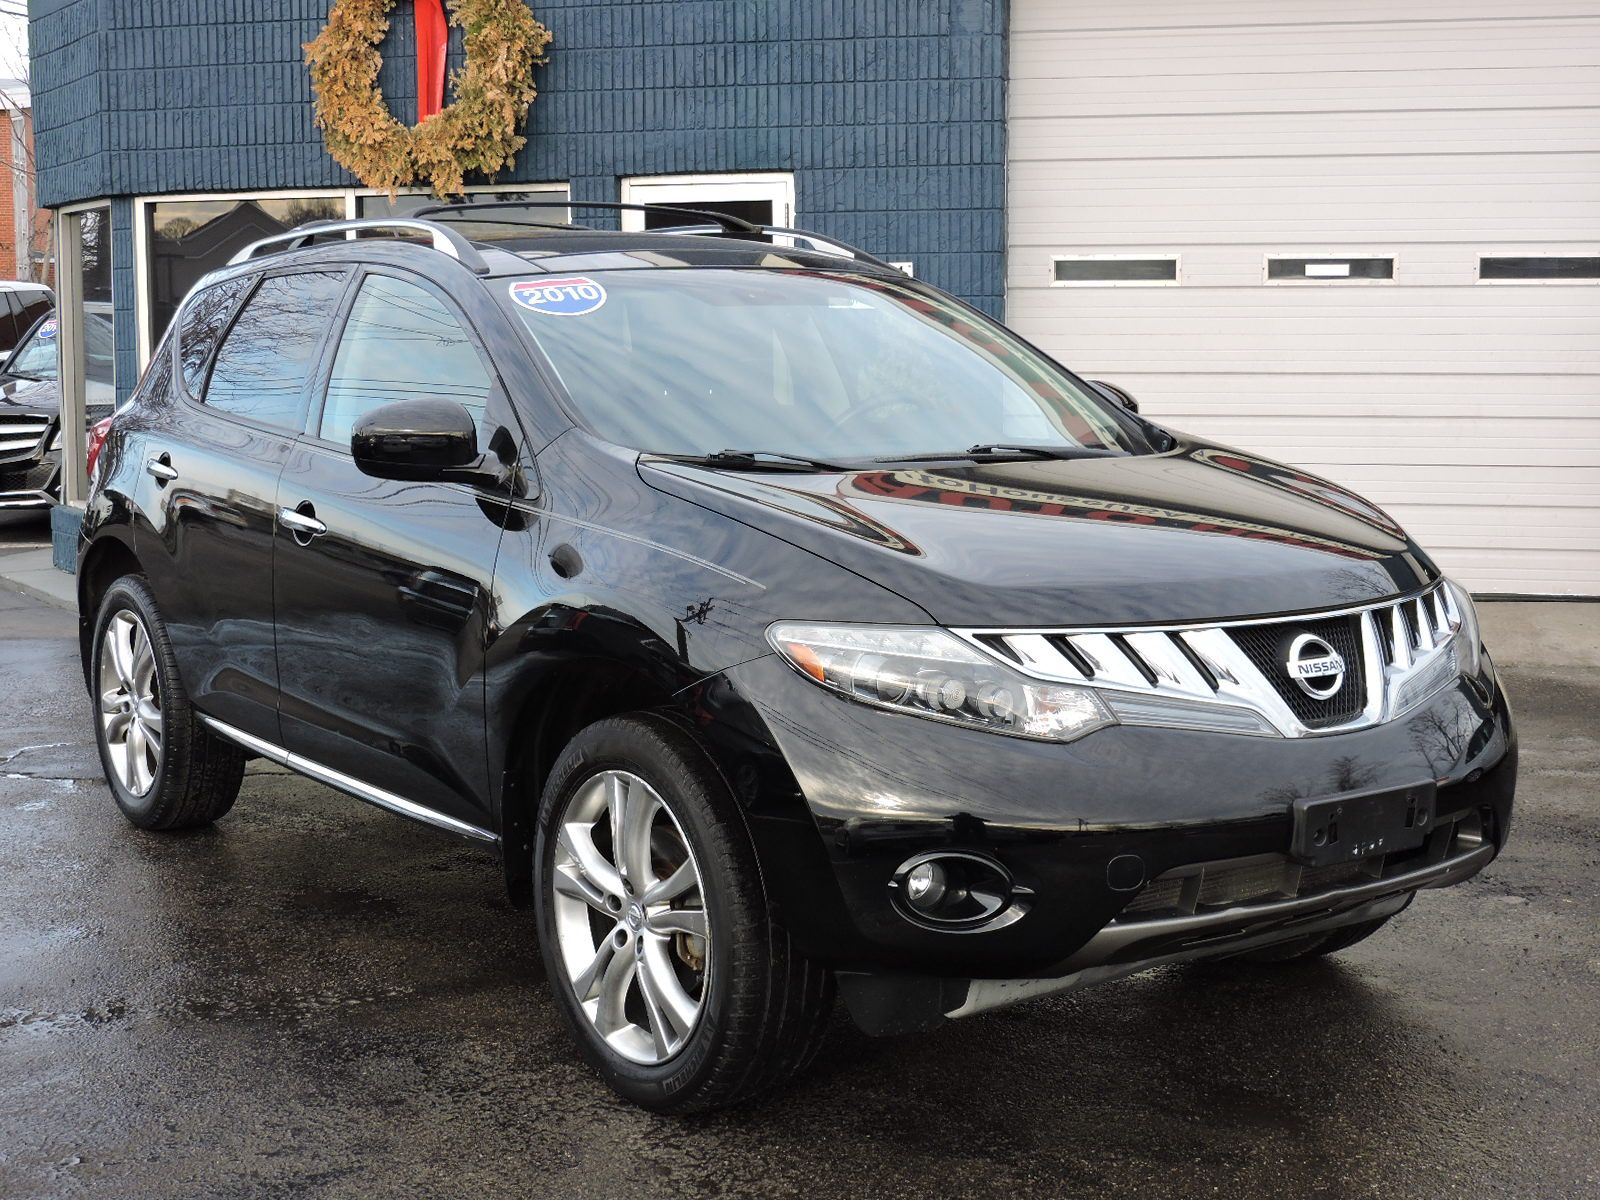 sale model in for listing has expired murano nissan awka this